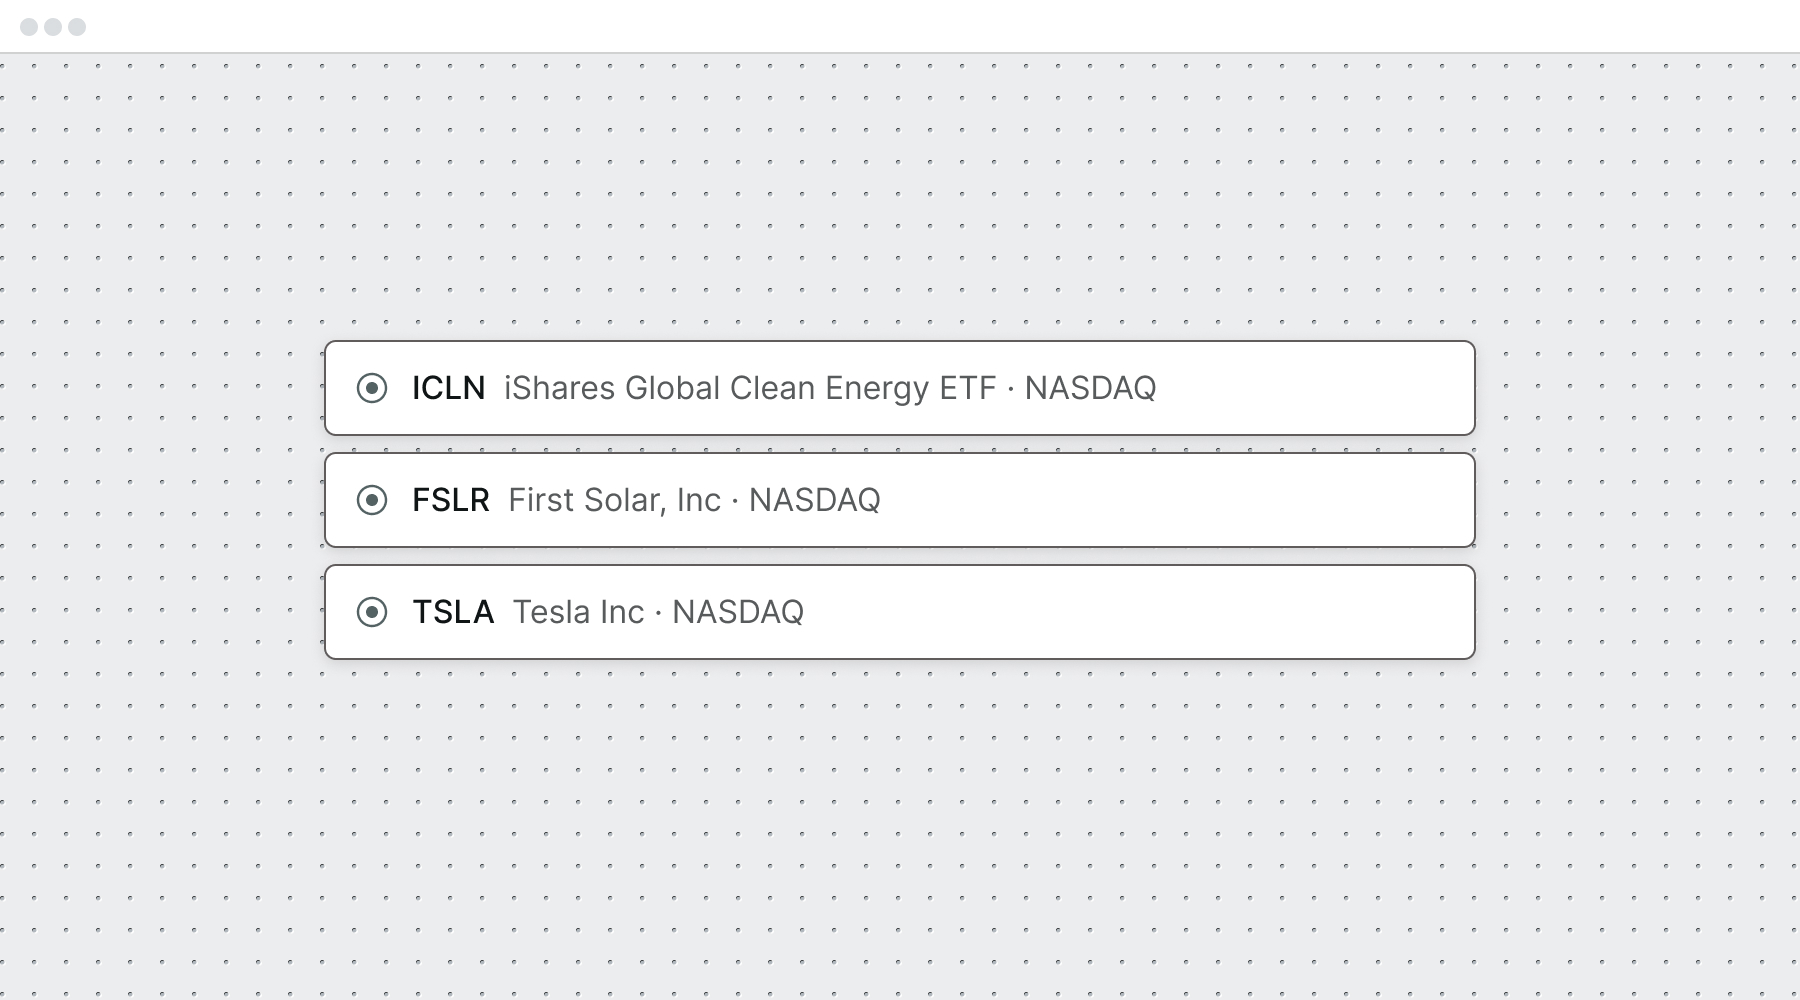 Three stock picks: ICLN, FSLR, TSLA.